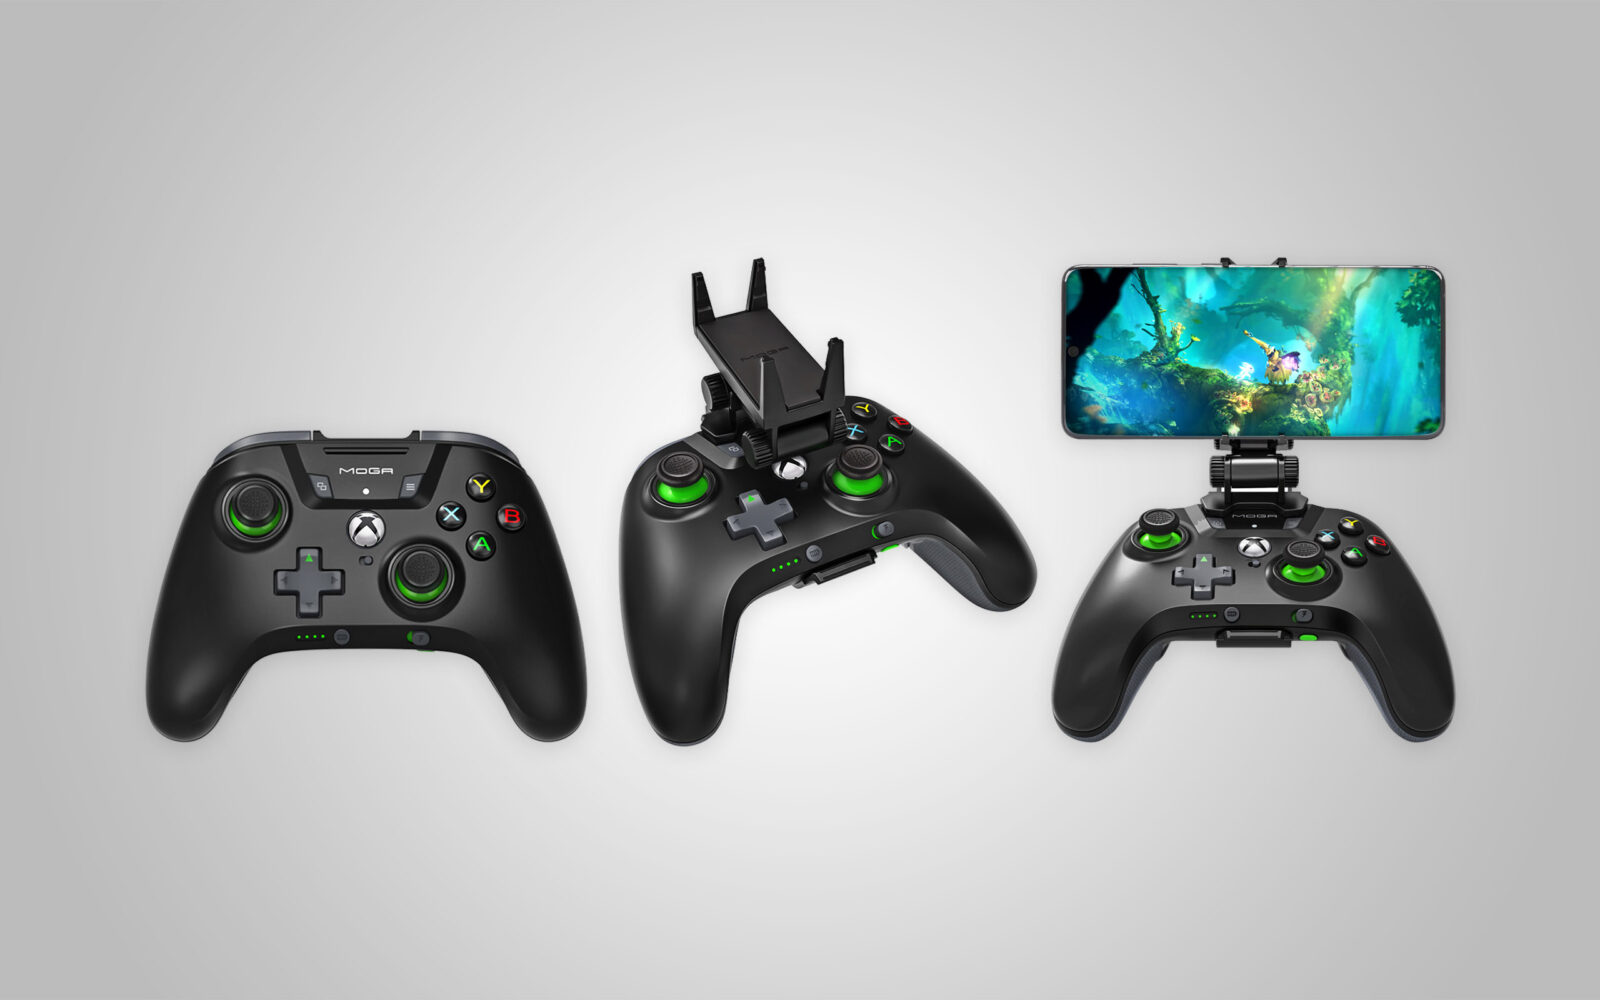 MOGA XP5-X Plus Controller for Mobile Gaming